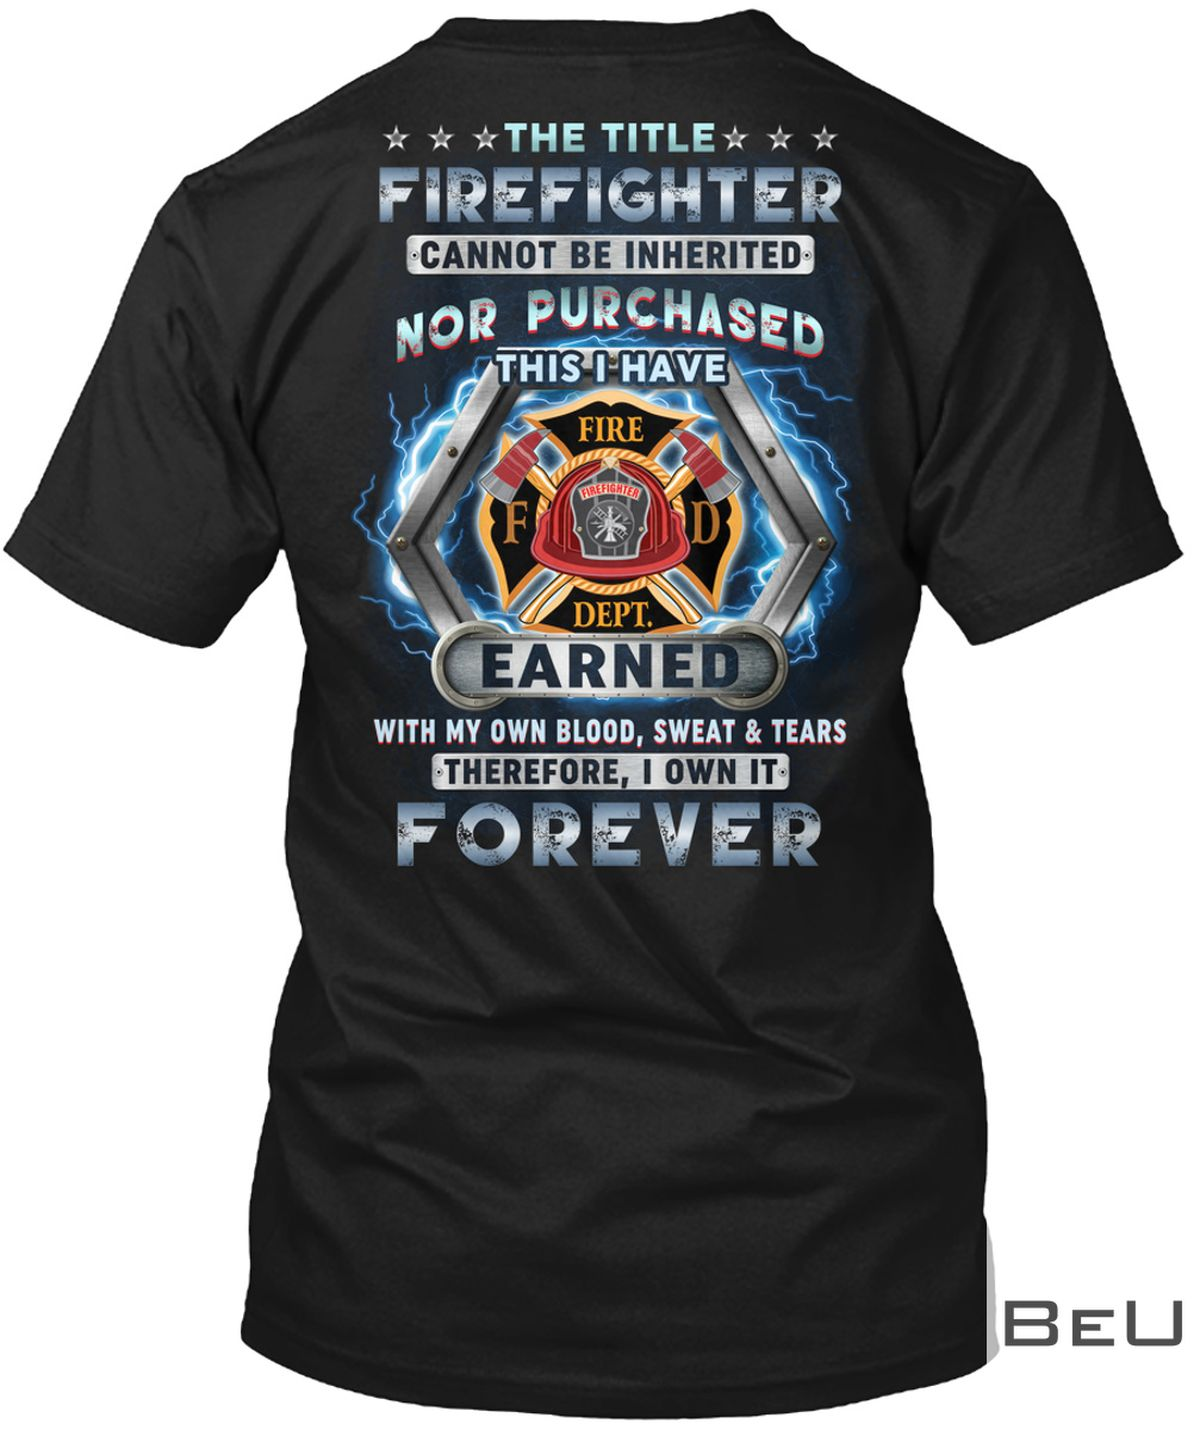 The Title Firefighter Cannot Be Inherited Nor Purchased This I Have Earned Shirt, hoodie